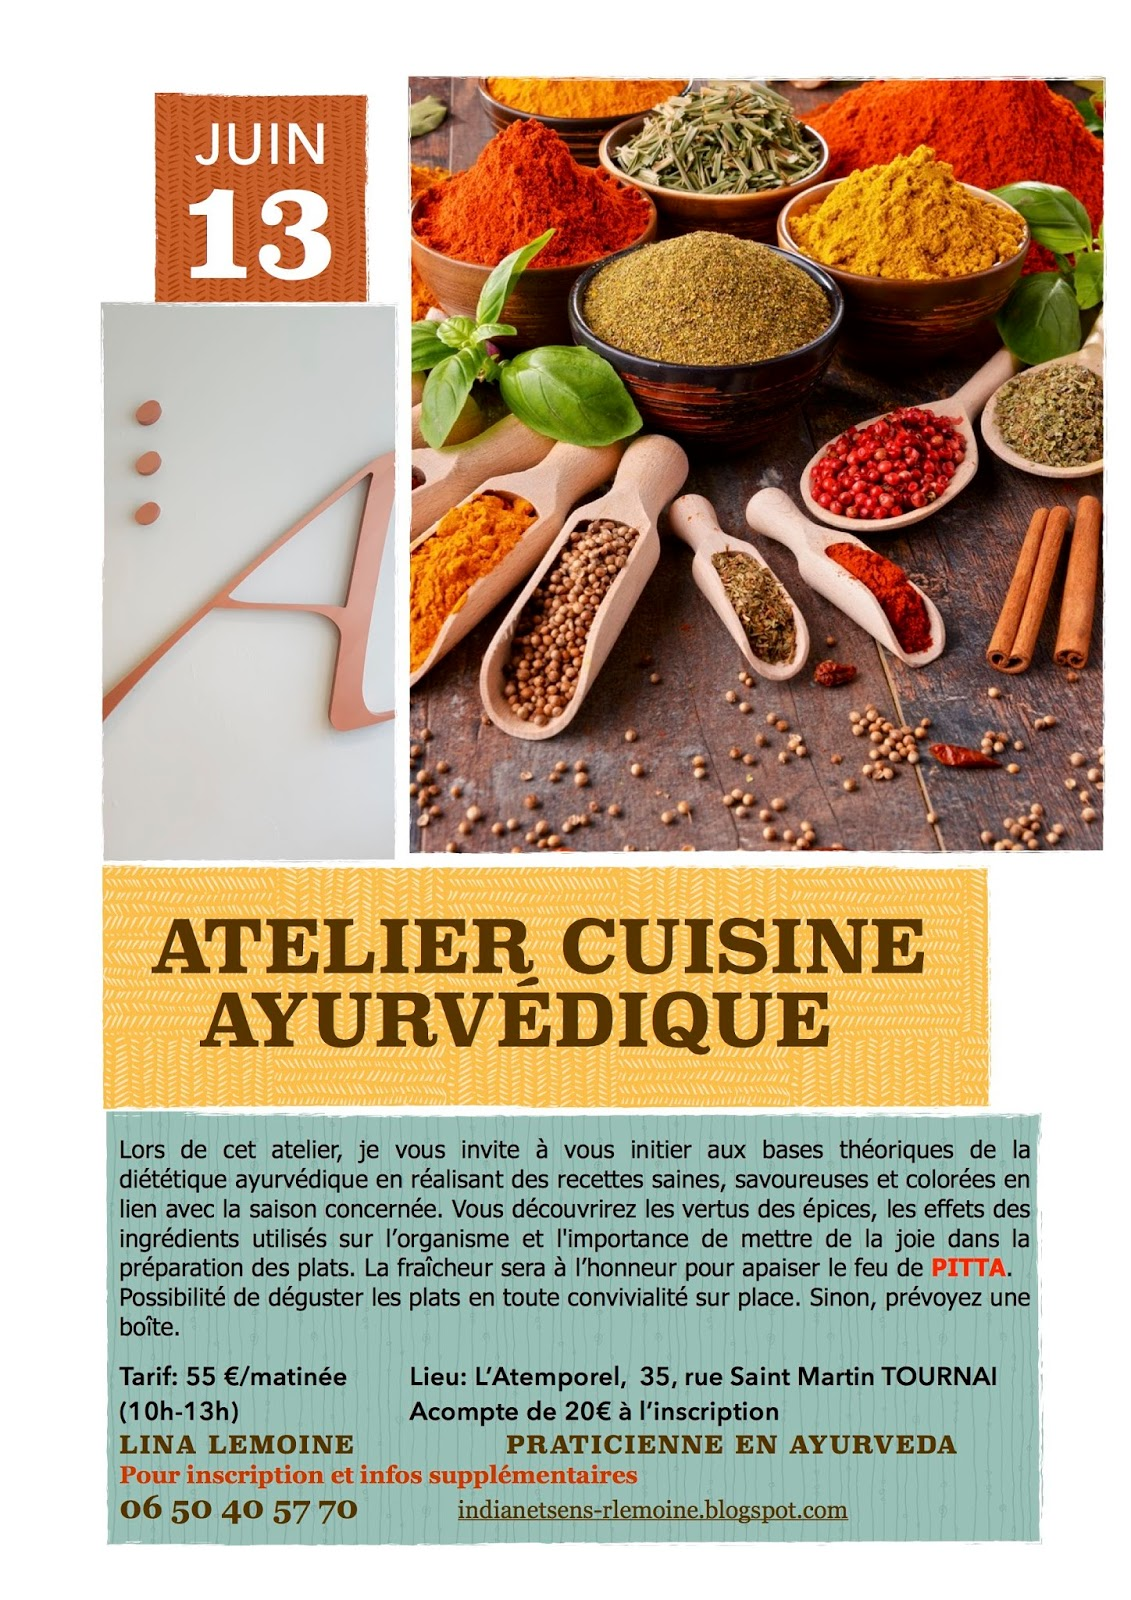 Yurv da authentique a lille massage lina agenda juin for Ateliers cuisine lille